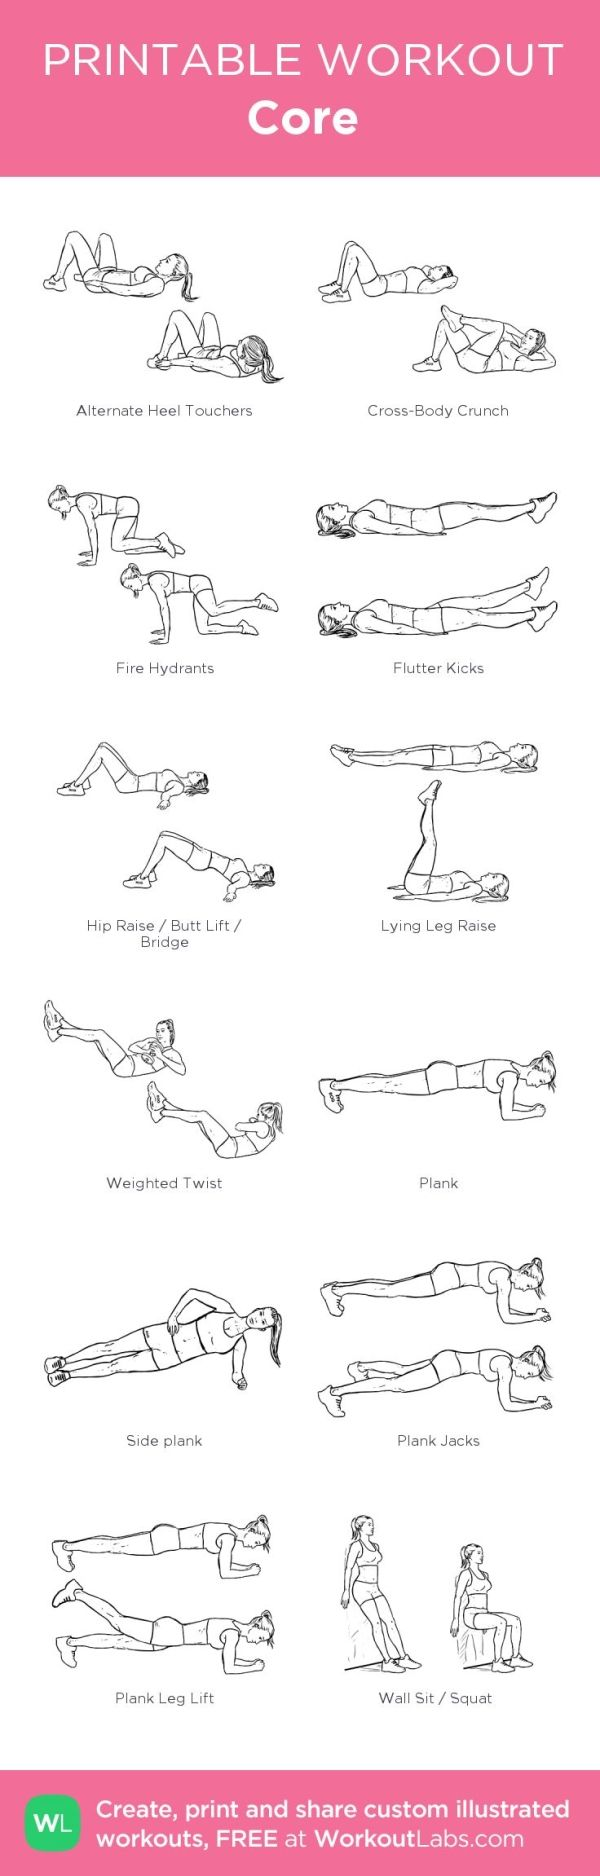 core my custom printable workout by workoutlabs fitness - Printable Printable